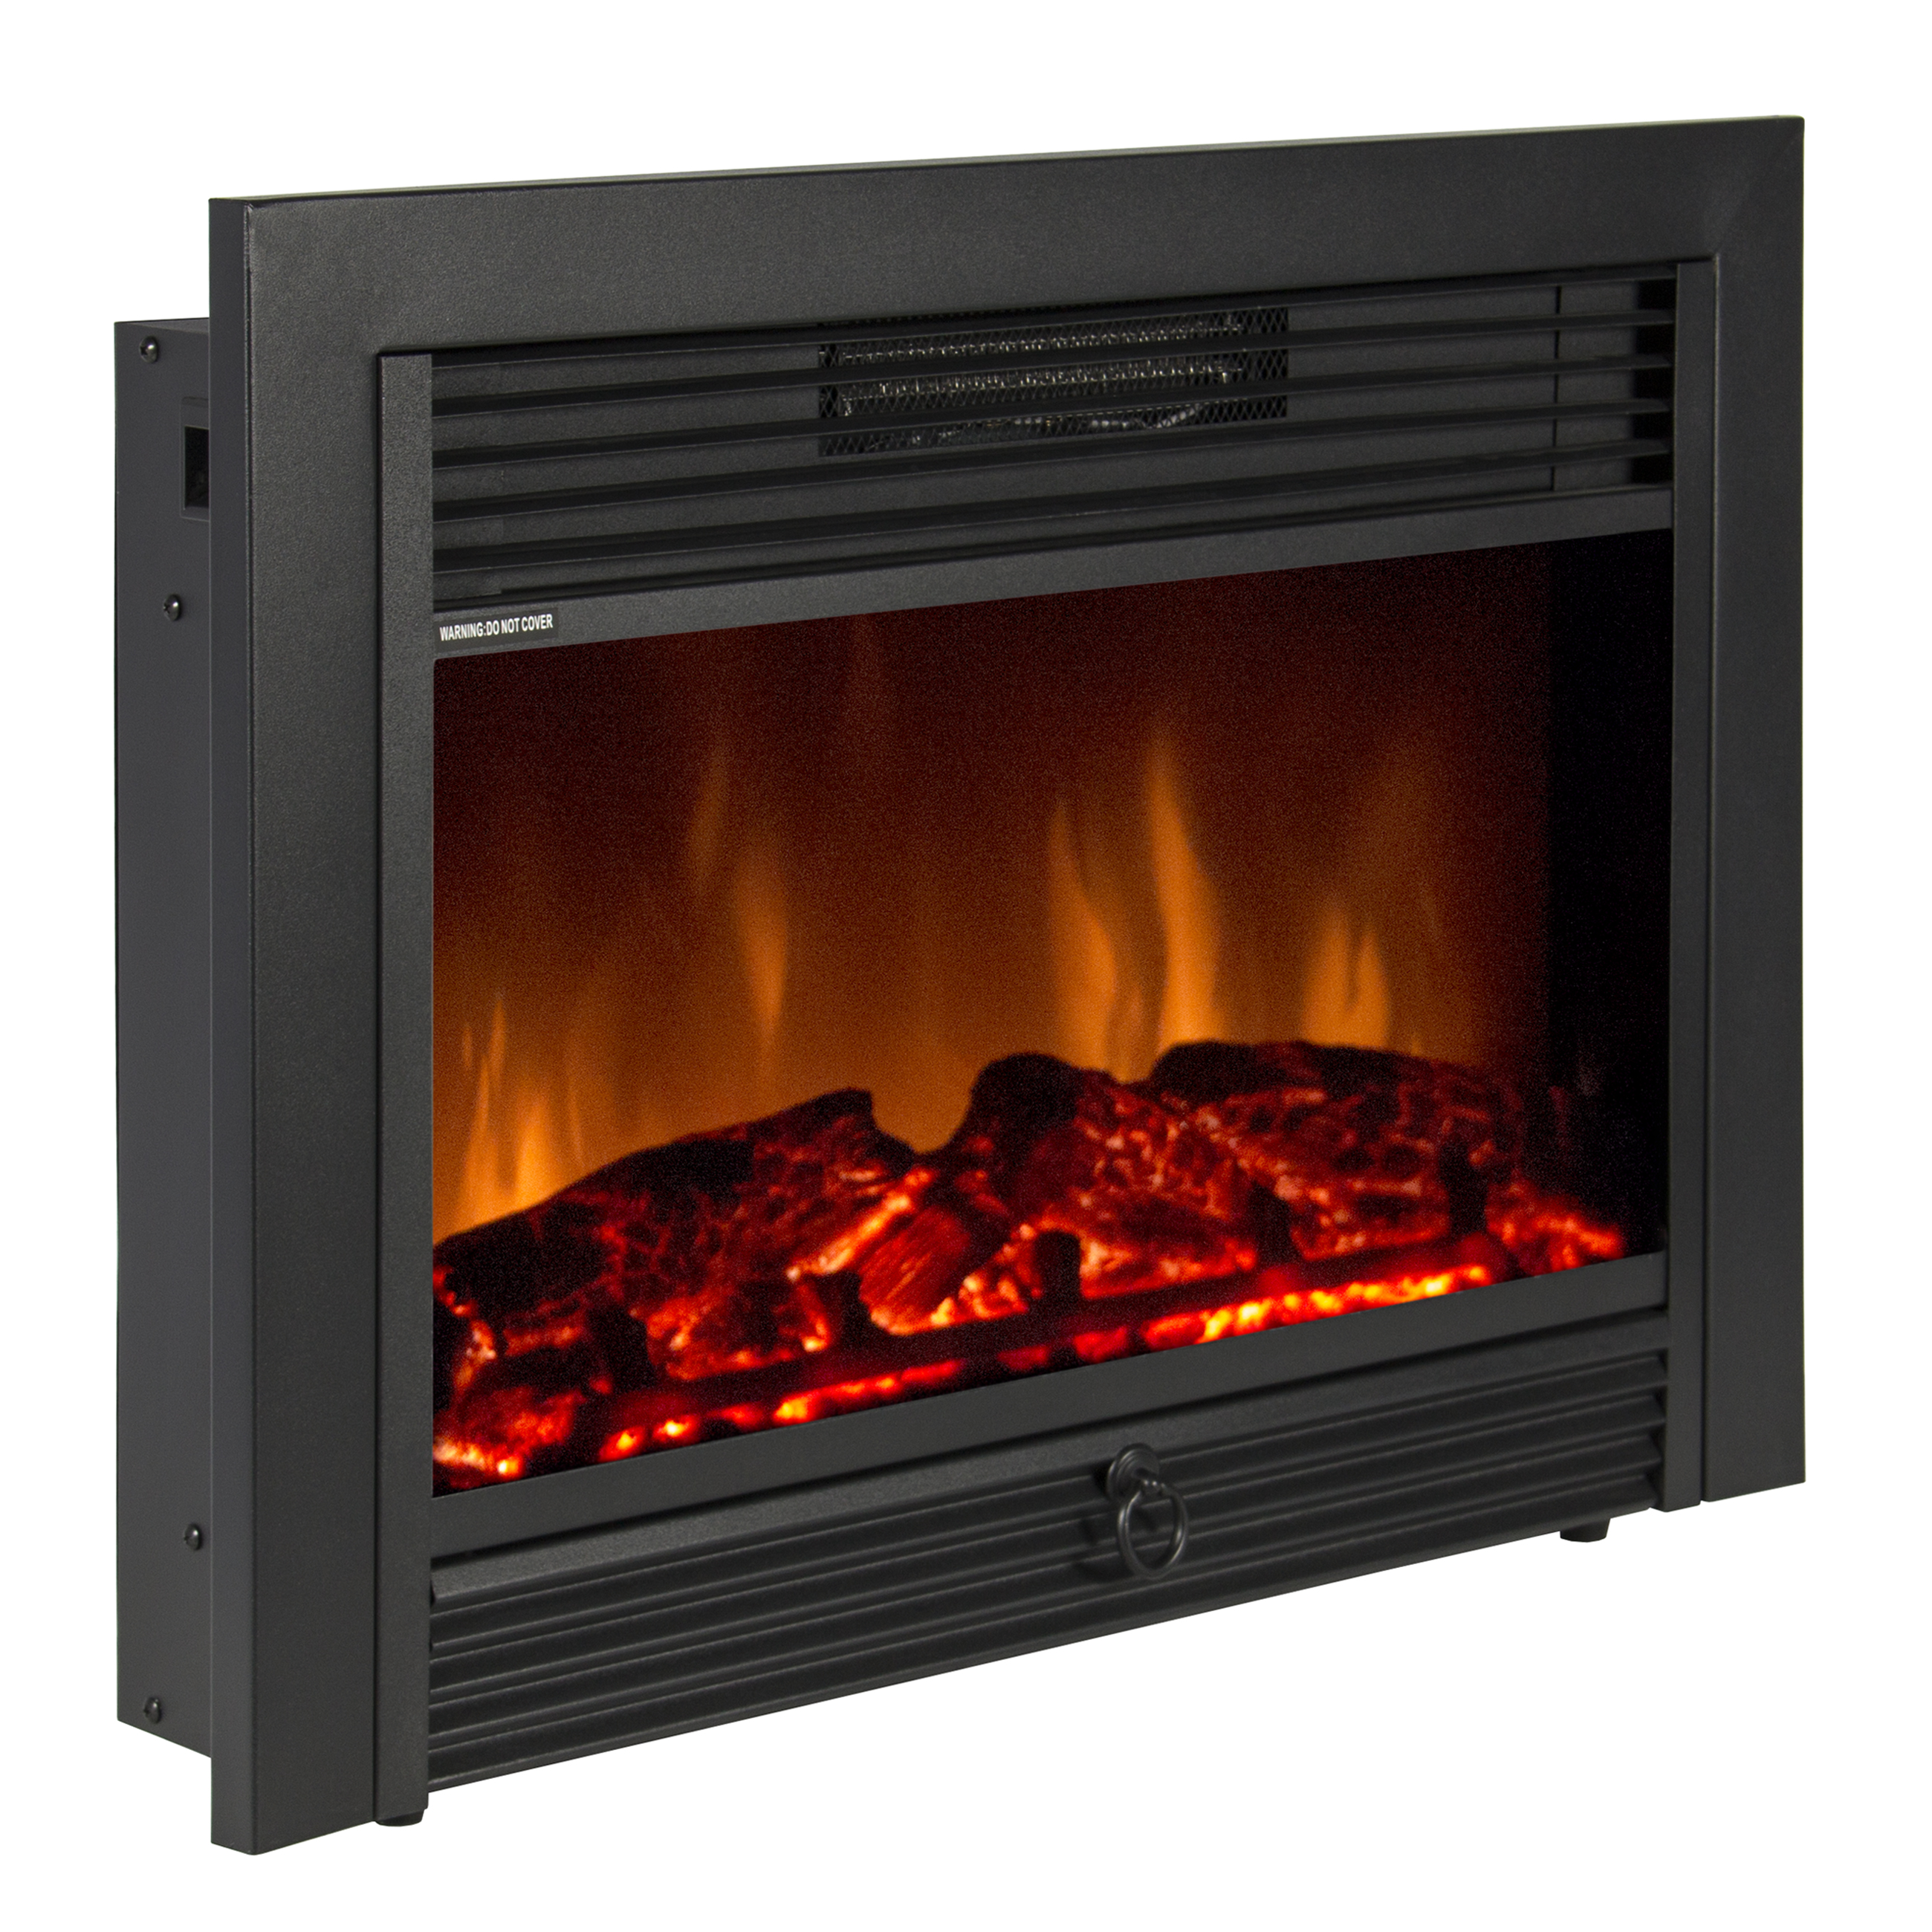 Space Heaters Fireplace Fireplaces Walmart